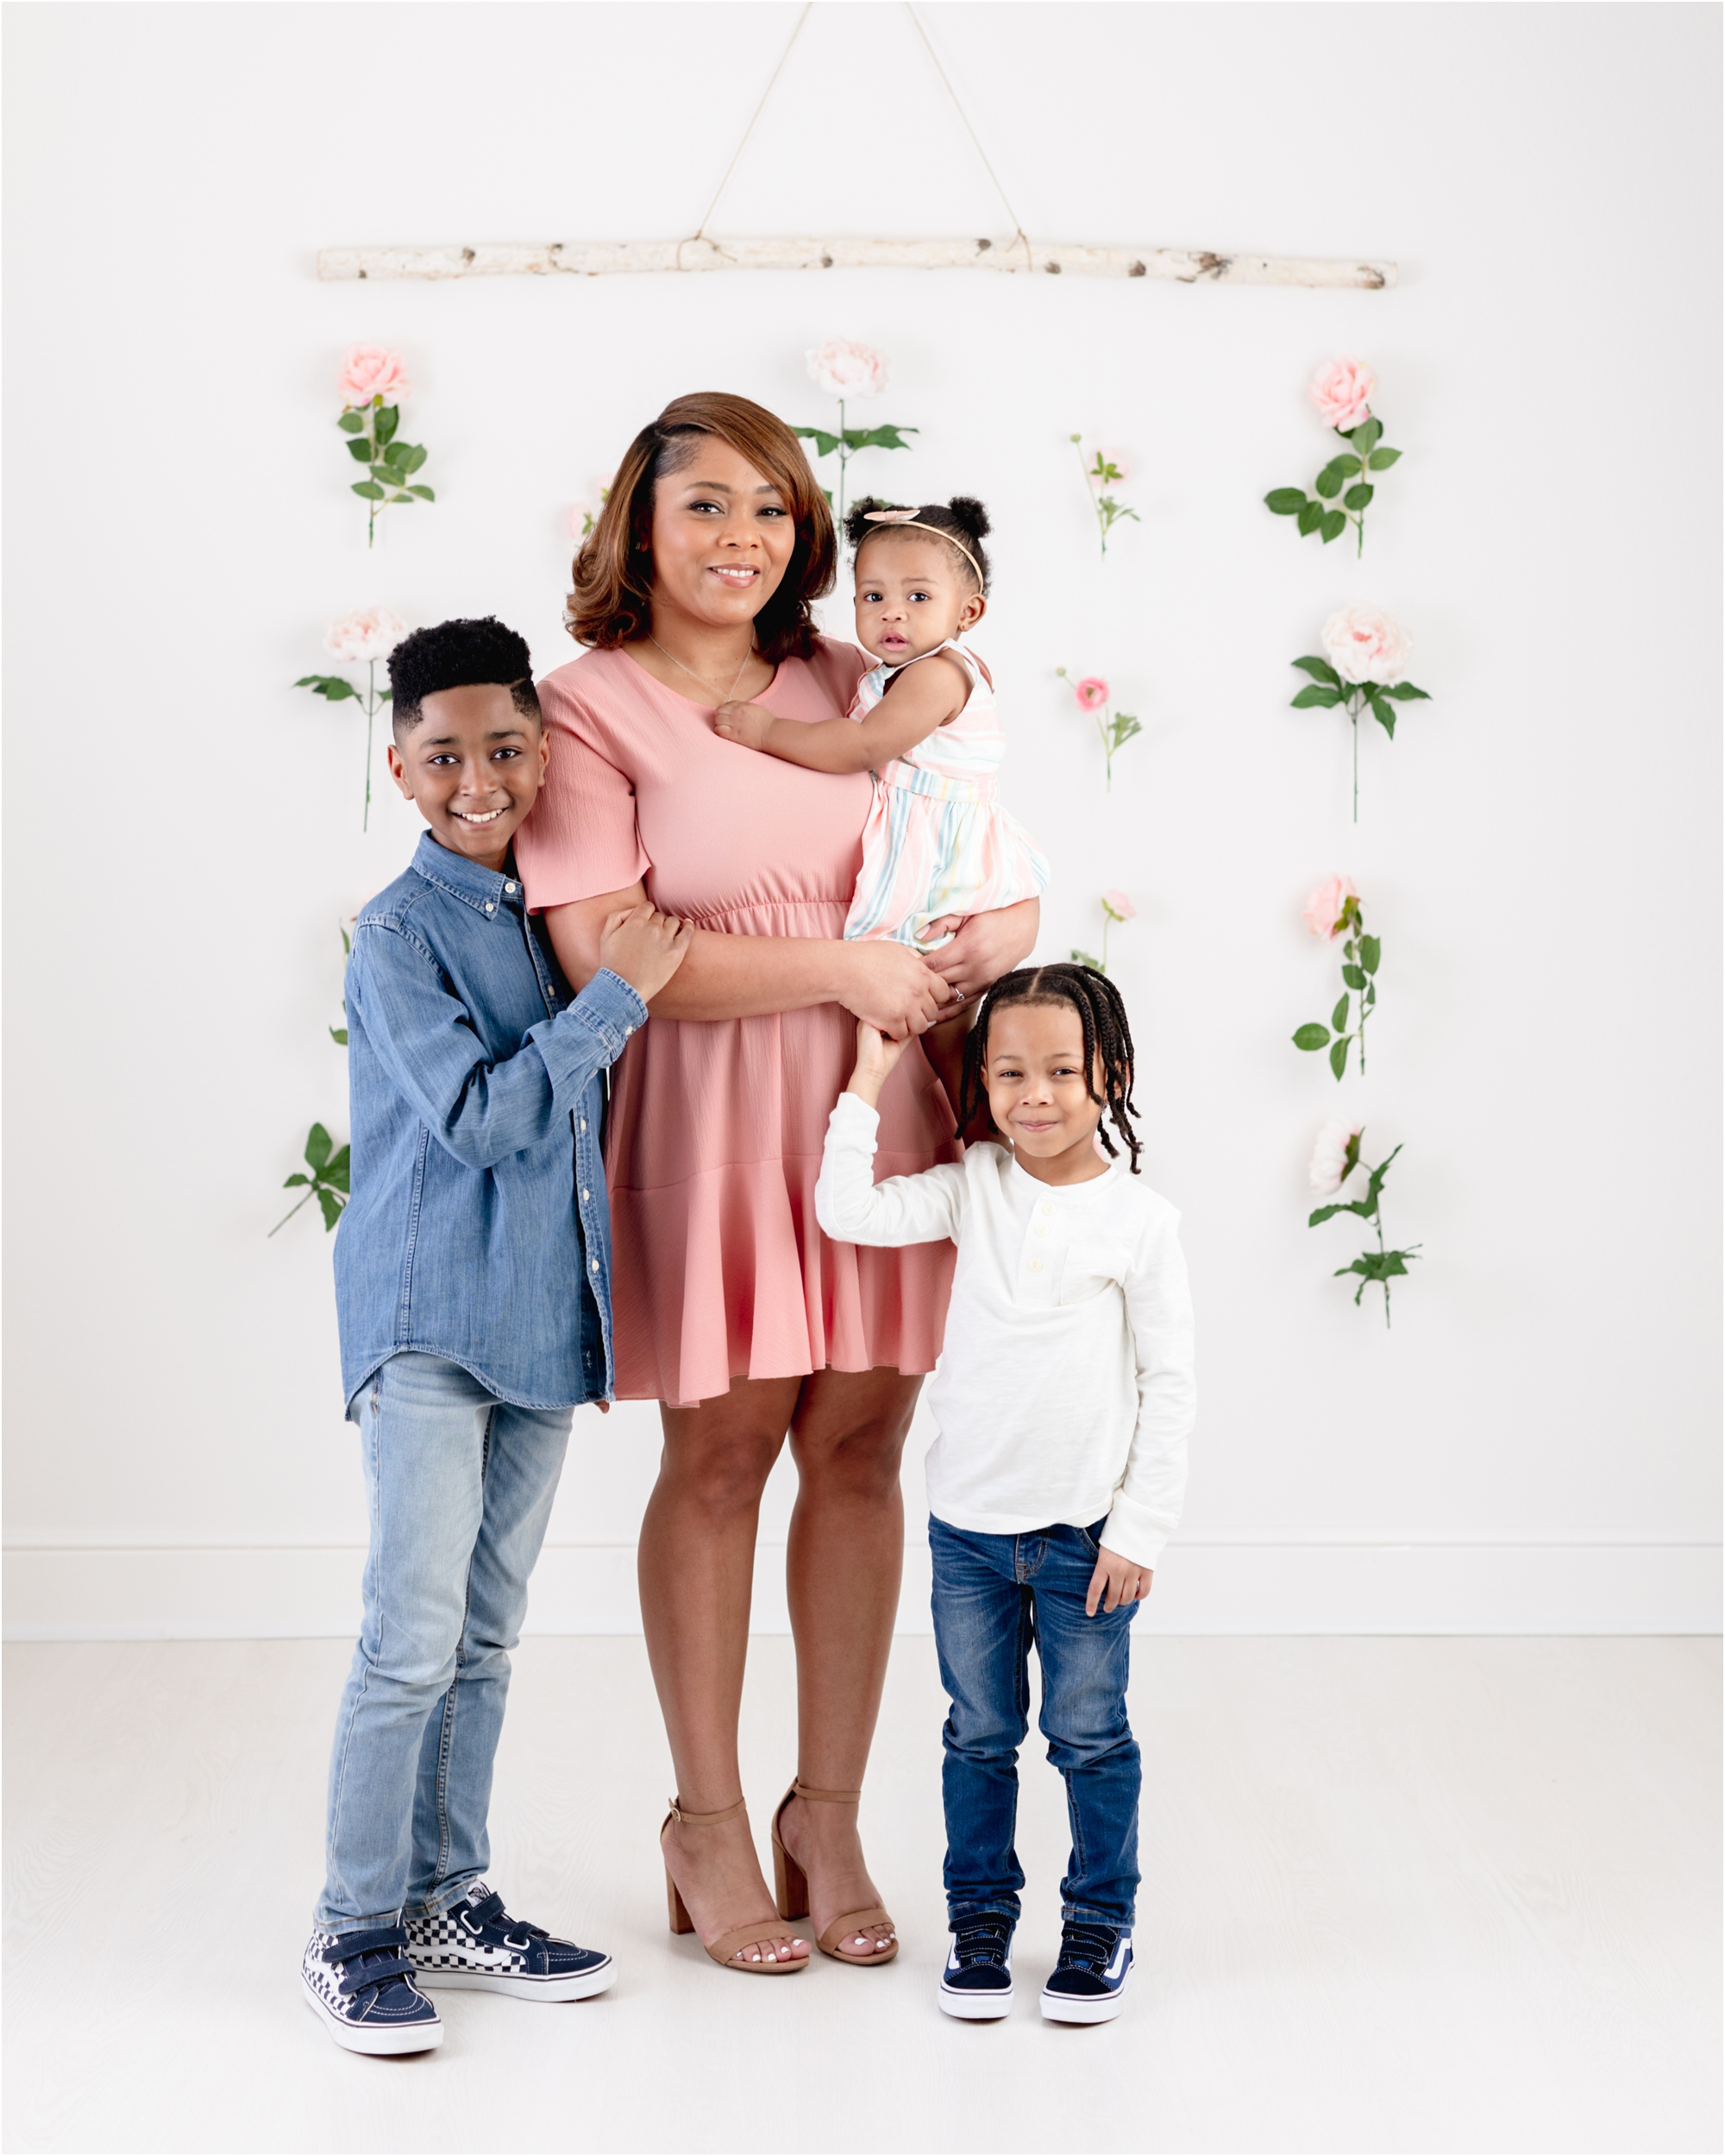 Mom smiling at camera with three children during studio family session with floral backdrop. Photo by Lifetime of Clicks Photography.